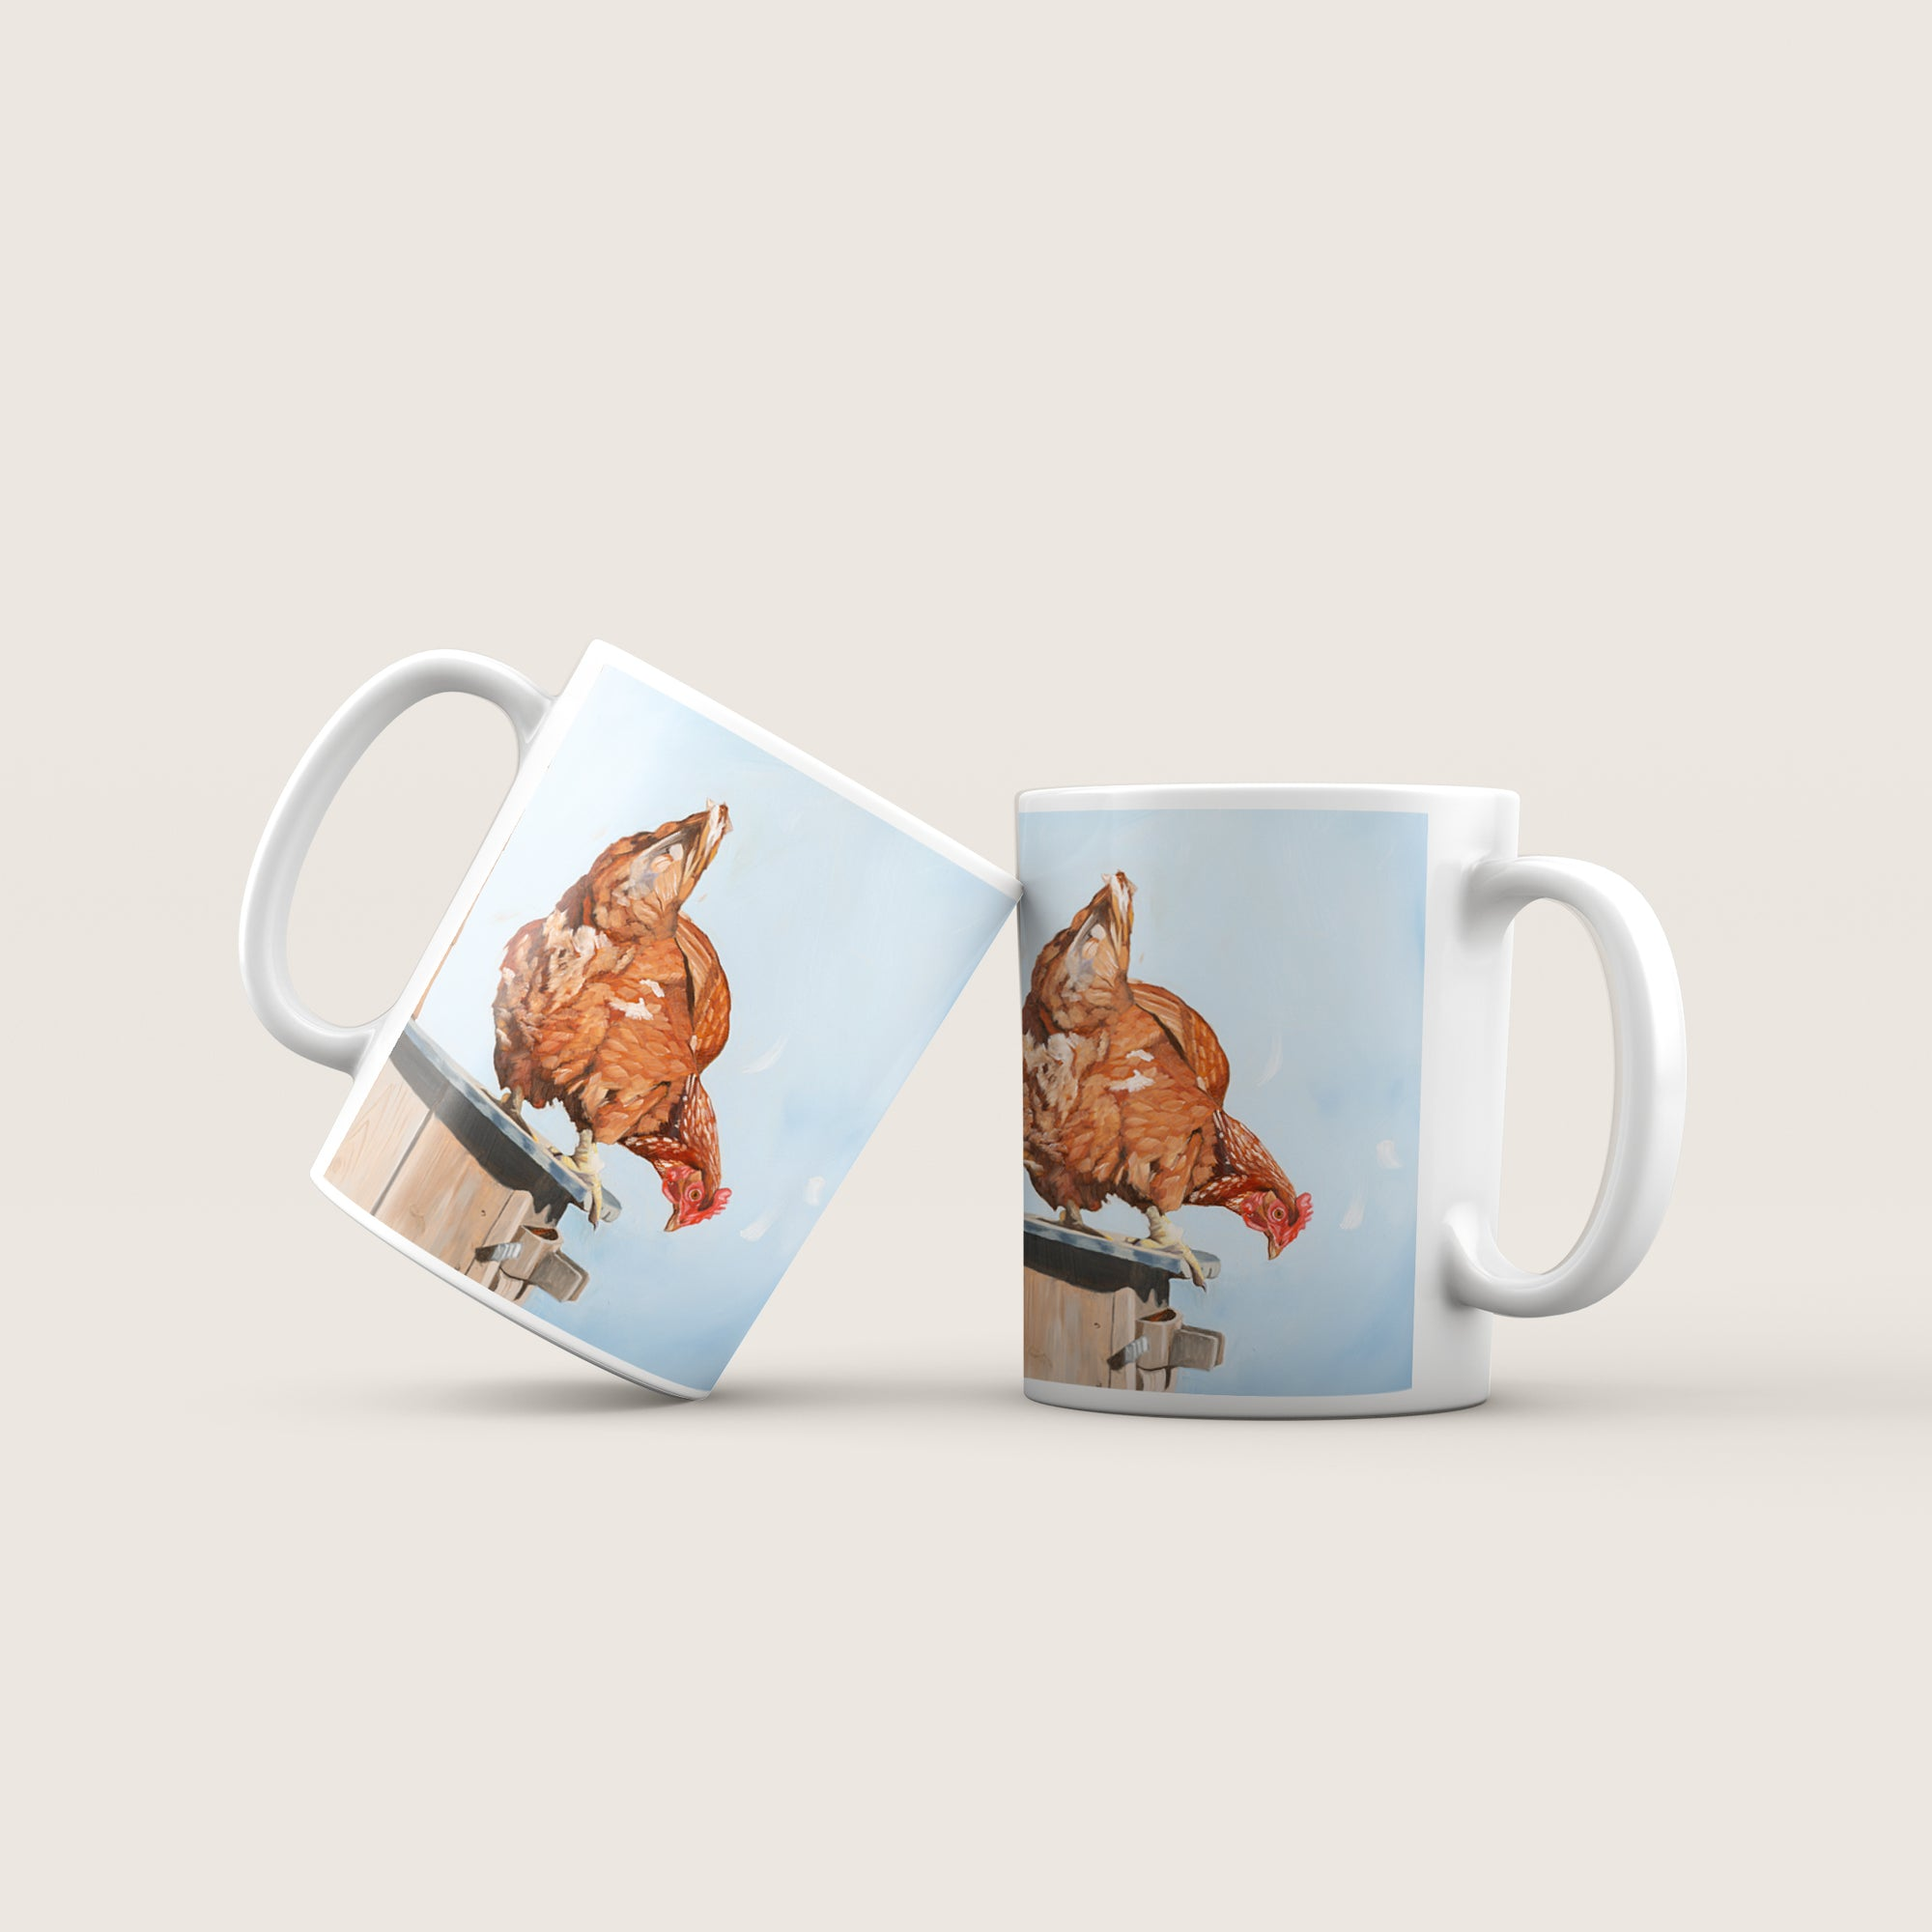 Chicken mug - Don't chicken out